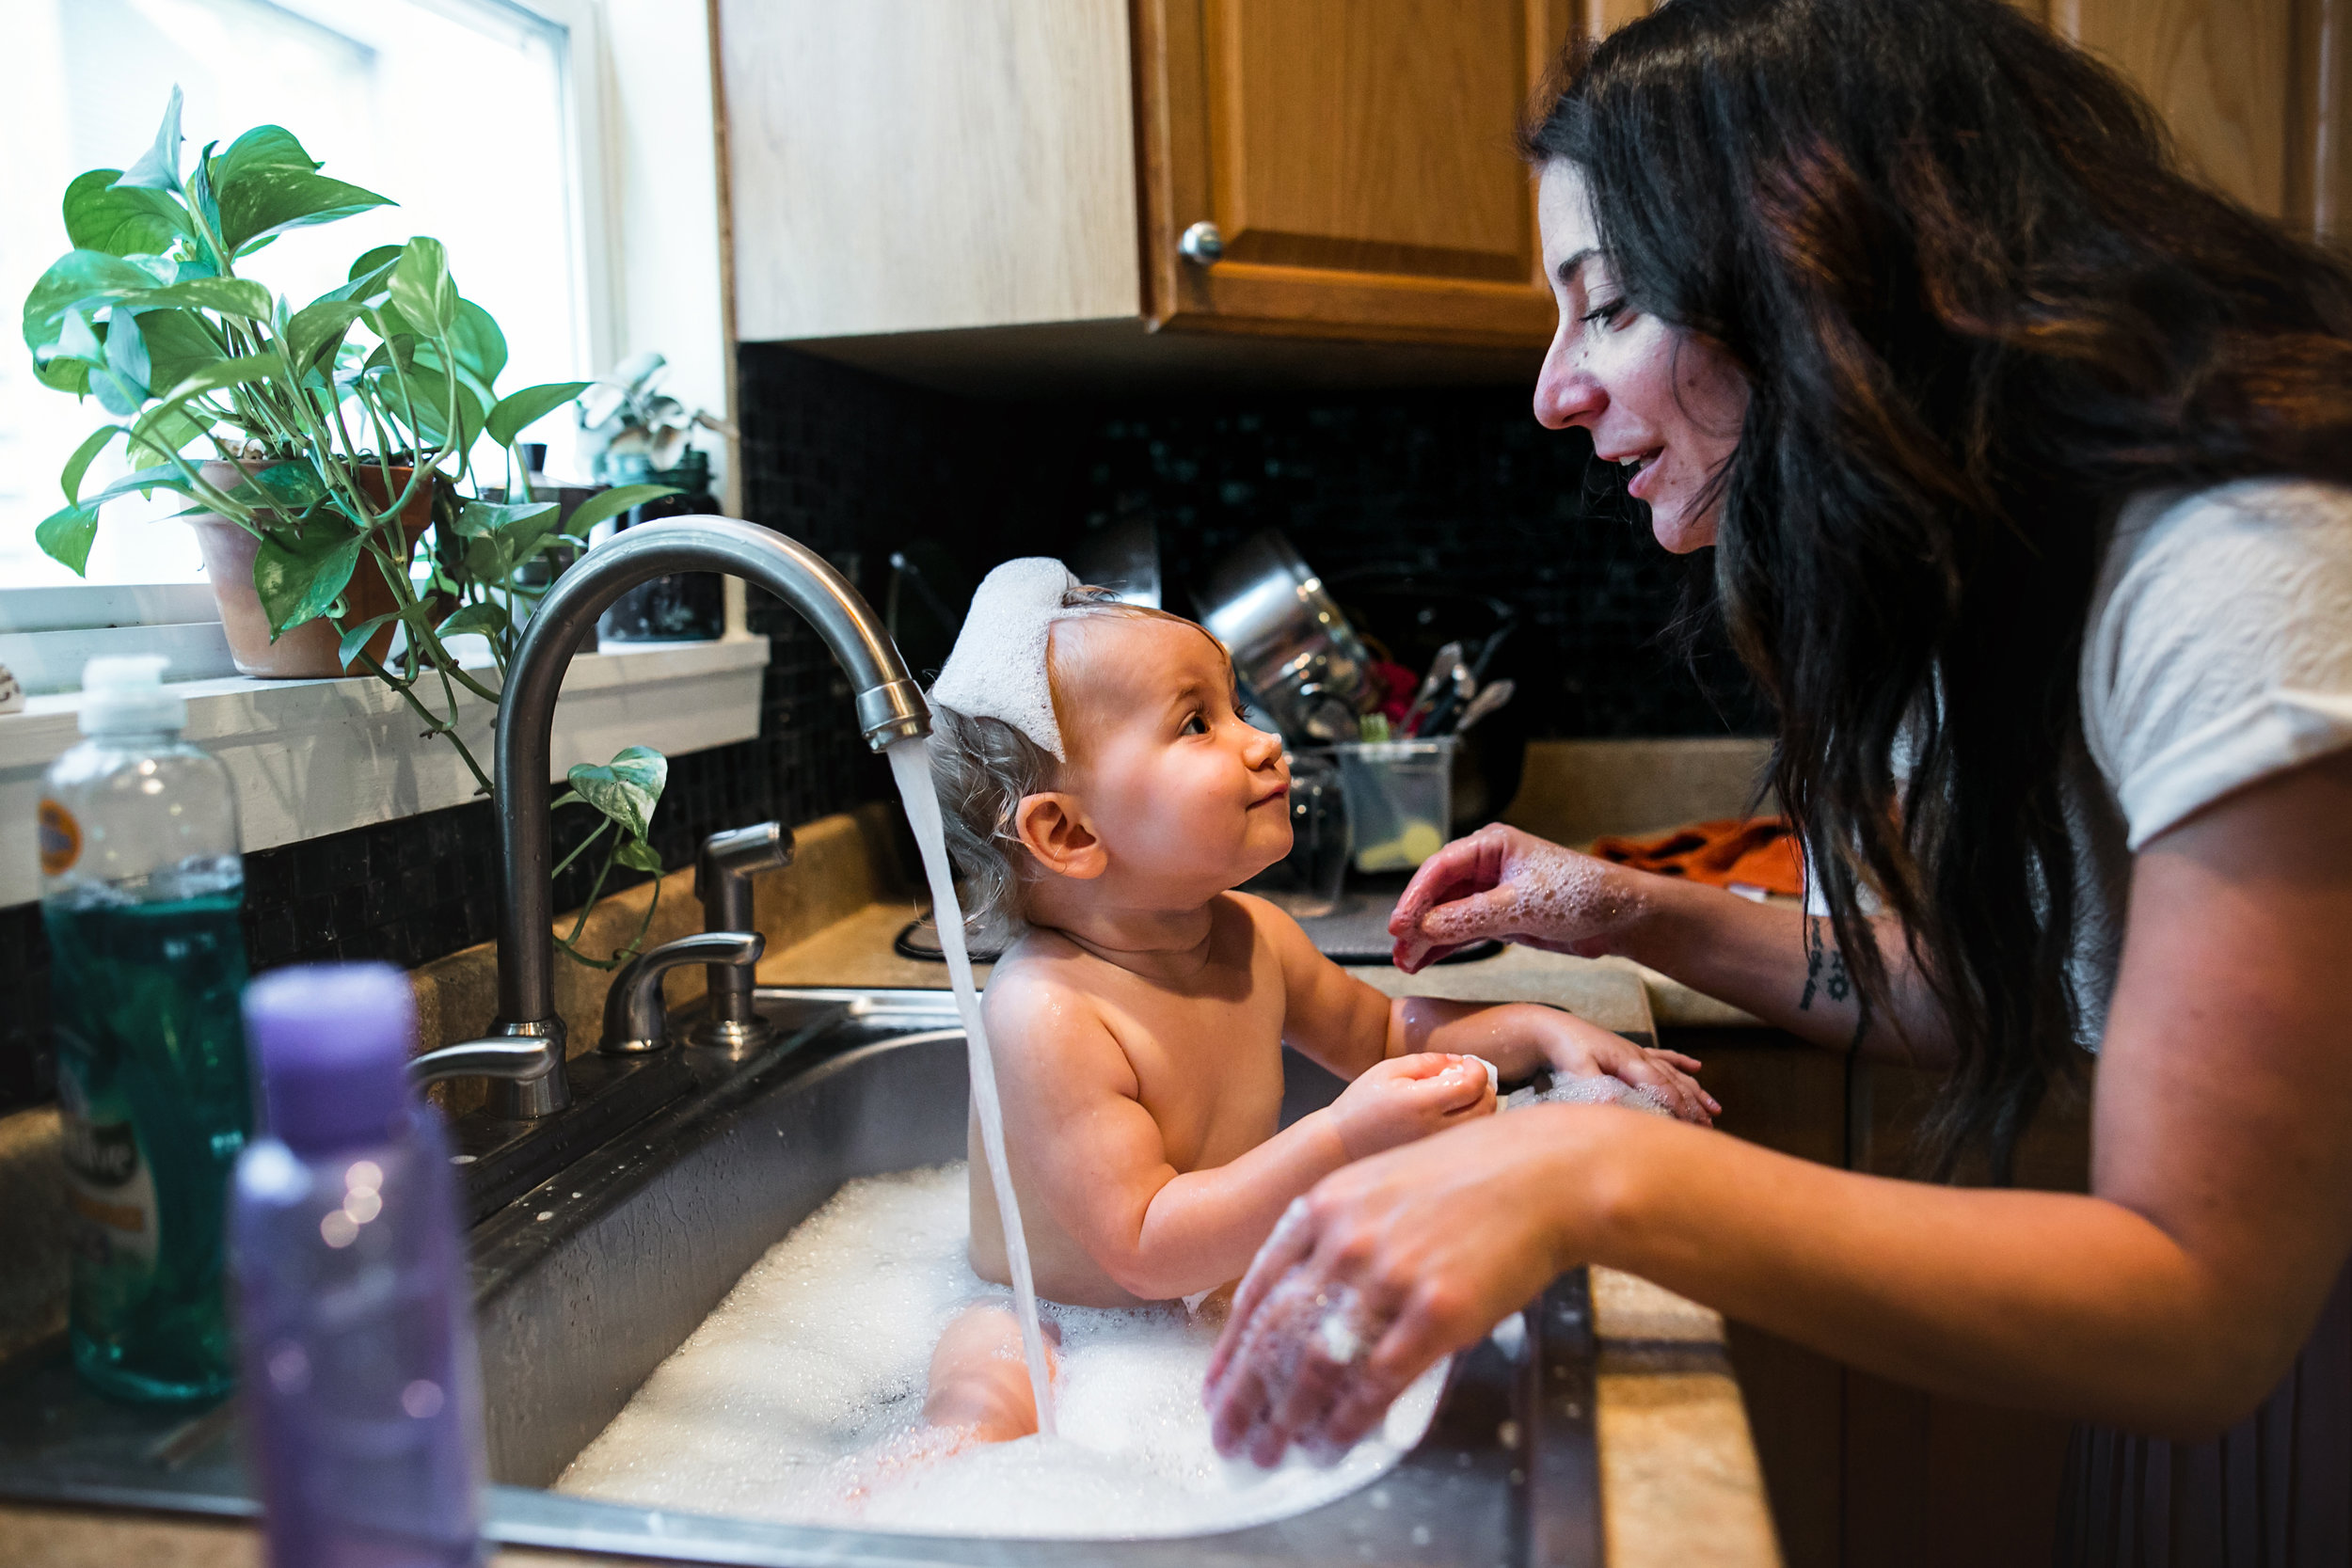 baby looks at mom while getting bubble bath in kitchen sink-(ZF-0126-04493-1-043).jpg